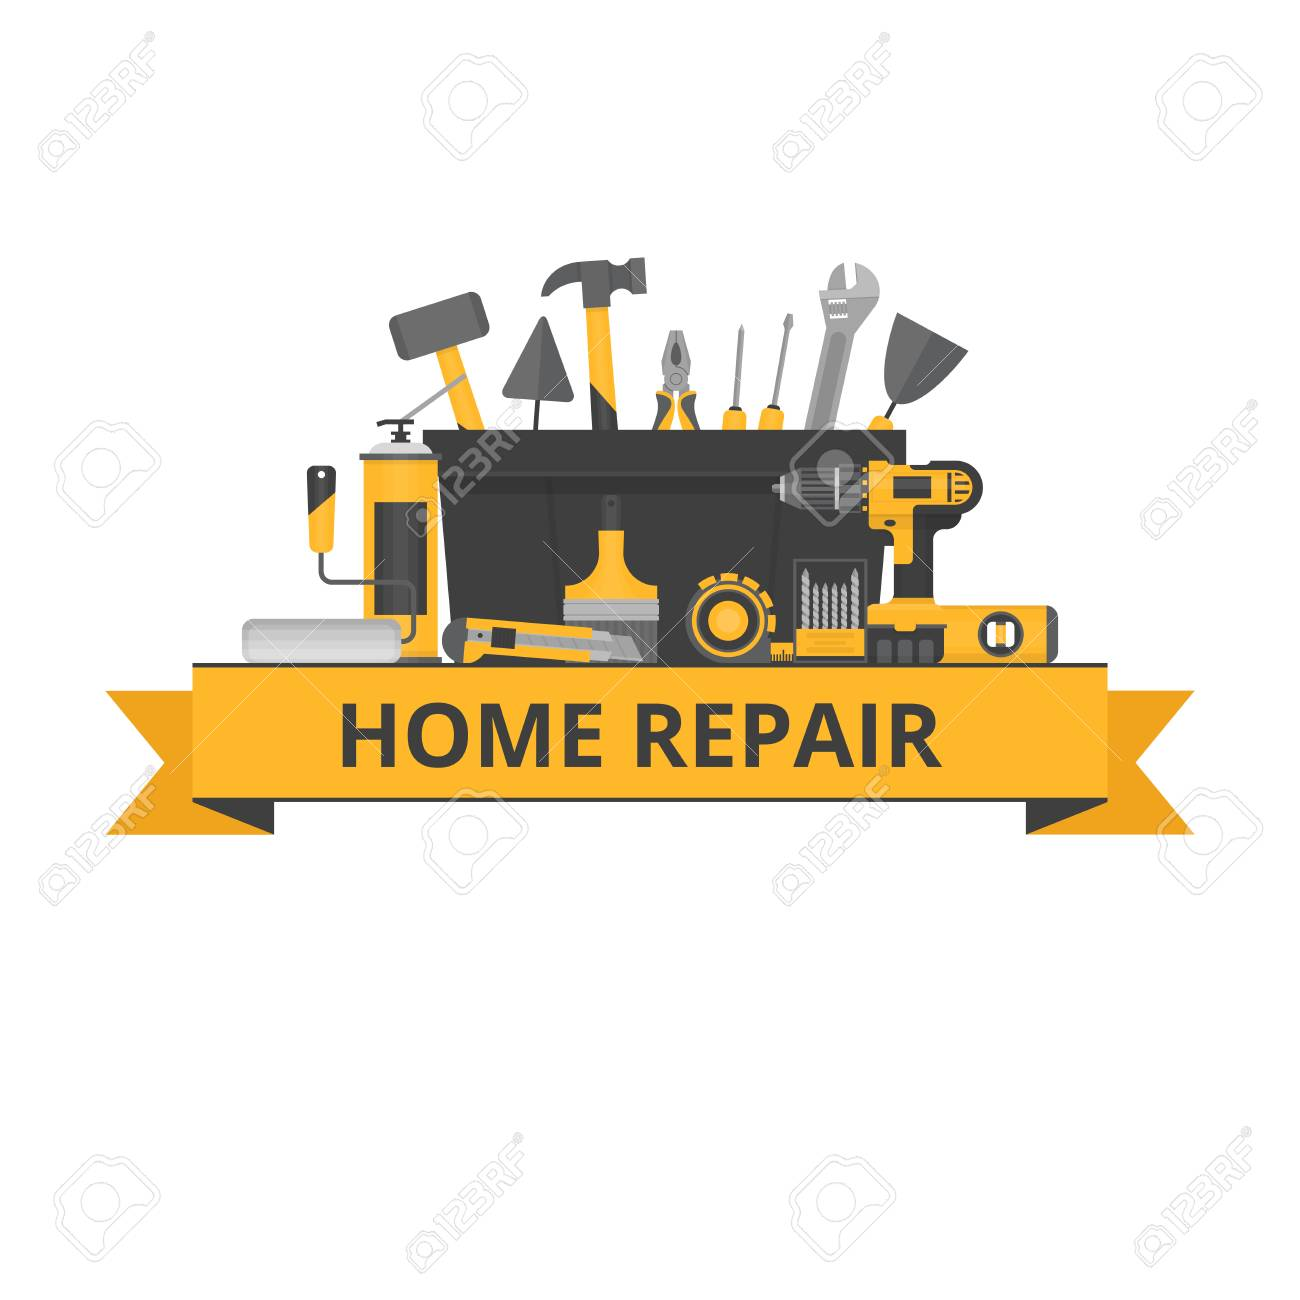 Construction Repair Home Repair Objects Construction Tools Hand Tools For Home